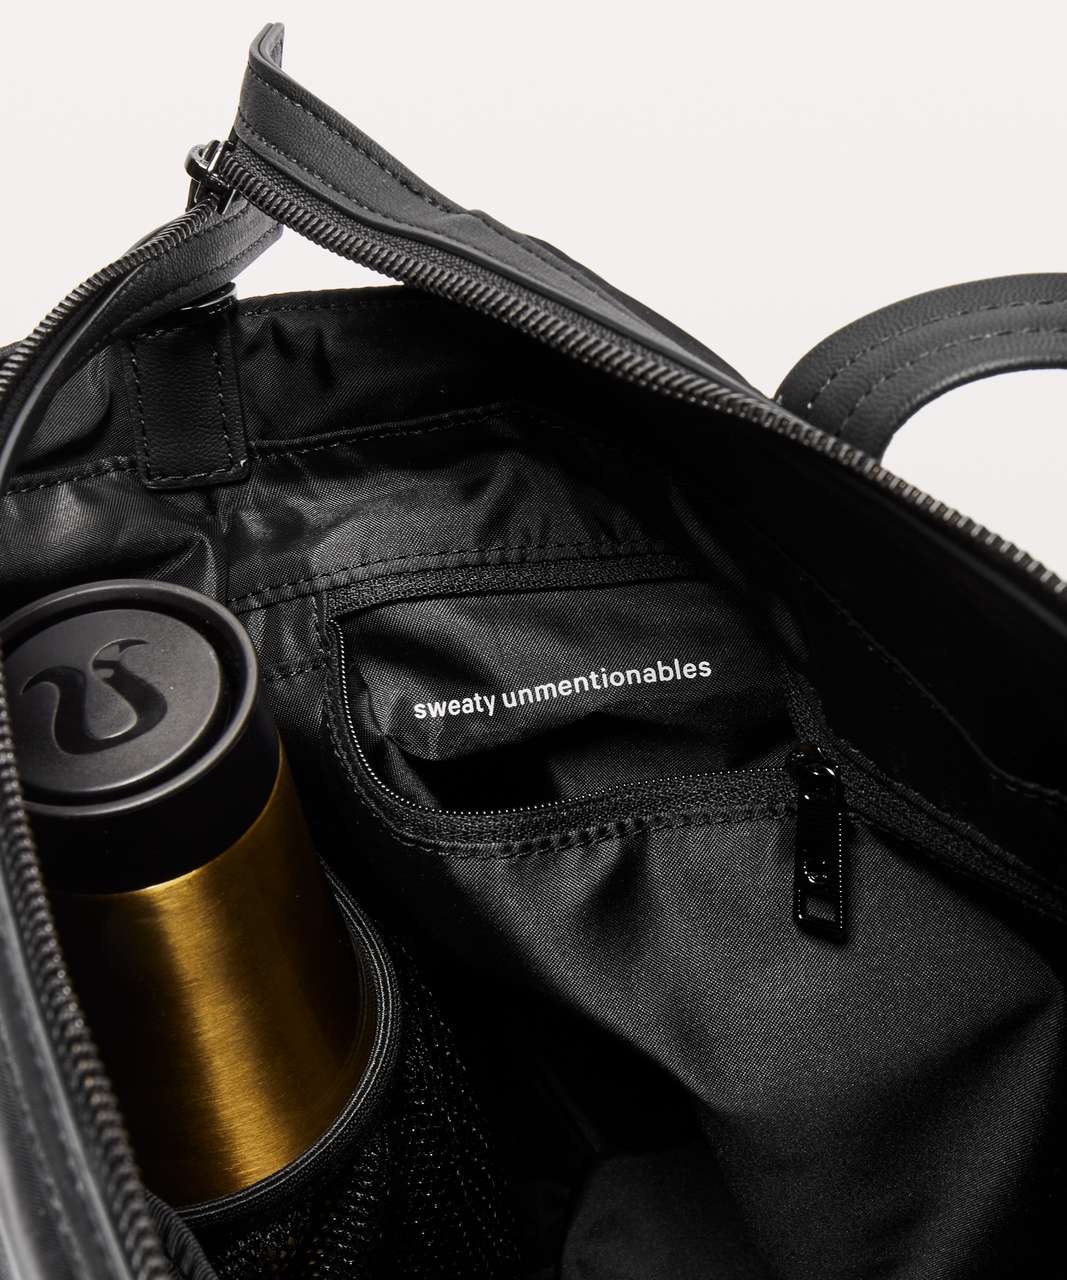 Lululemon Everywhere Bag *23L - Black